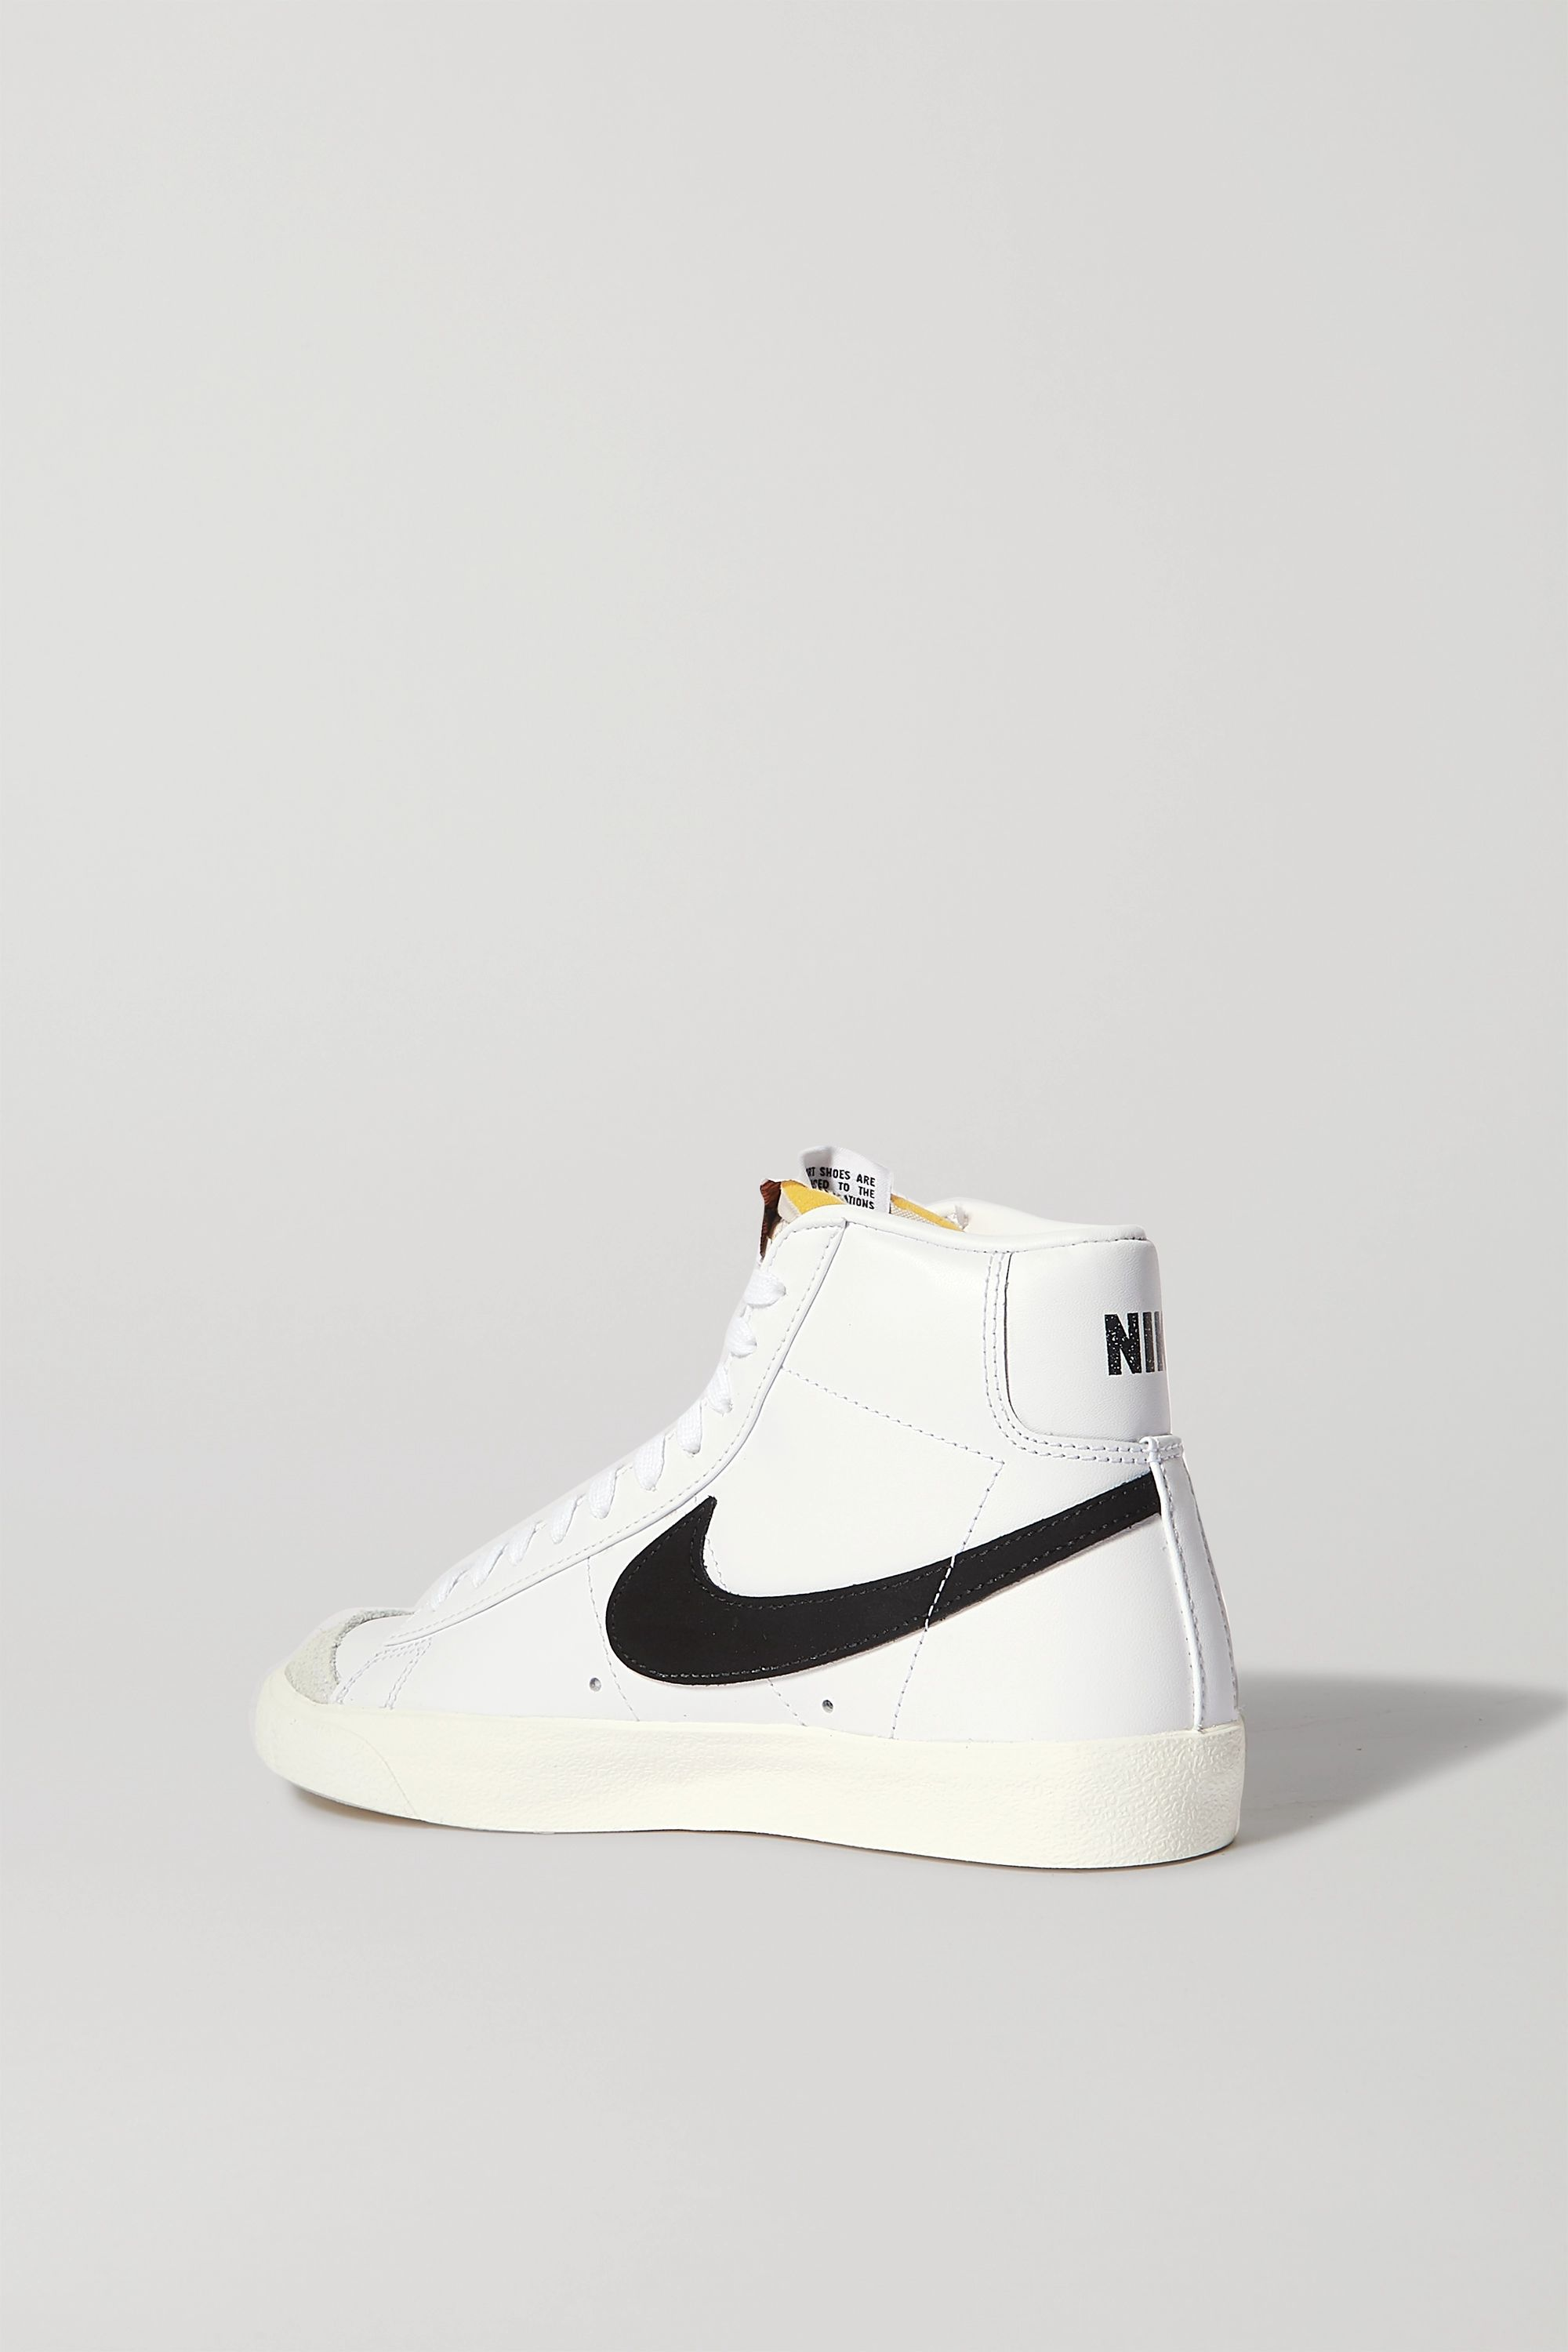 Nike Blazer Mid suede-trimmed leather high-top sneakers